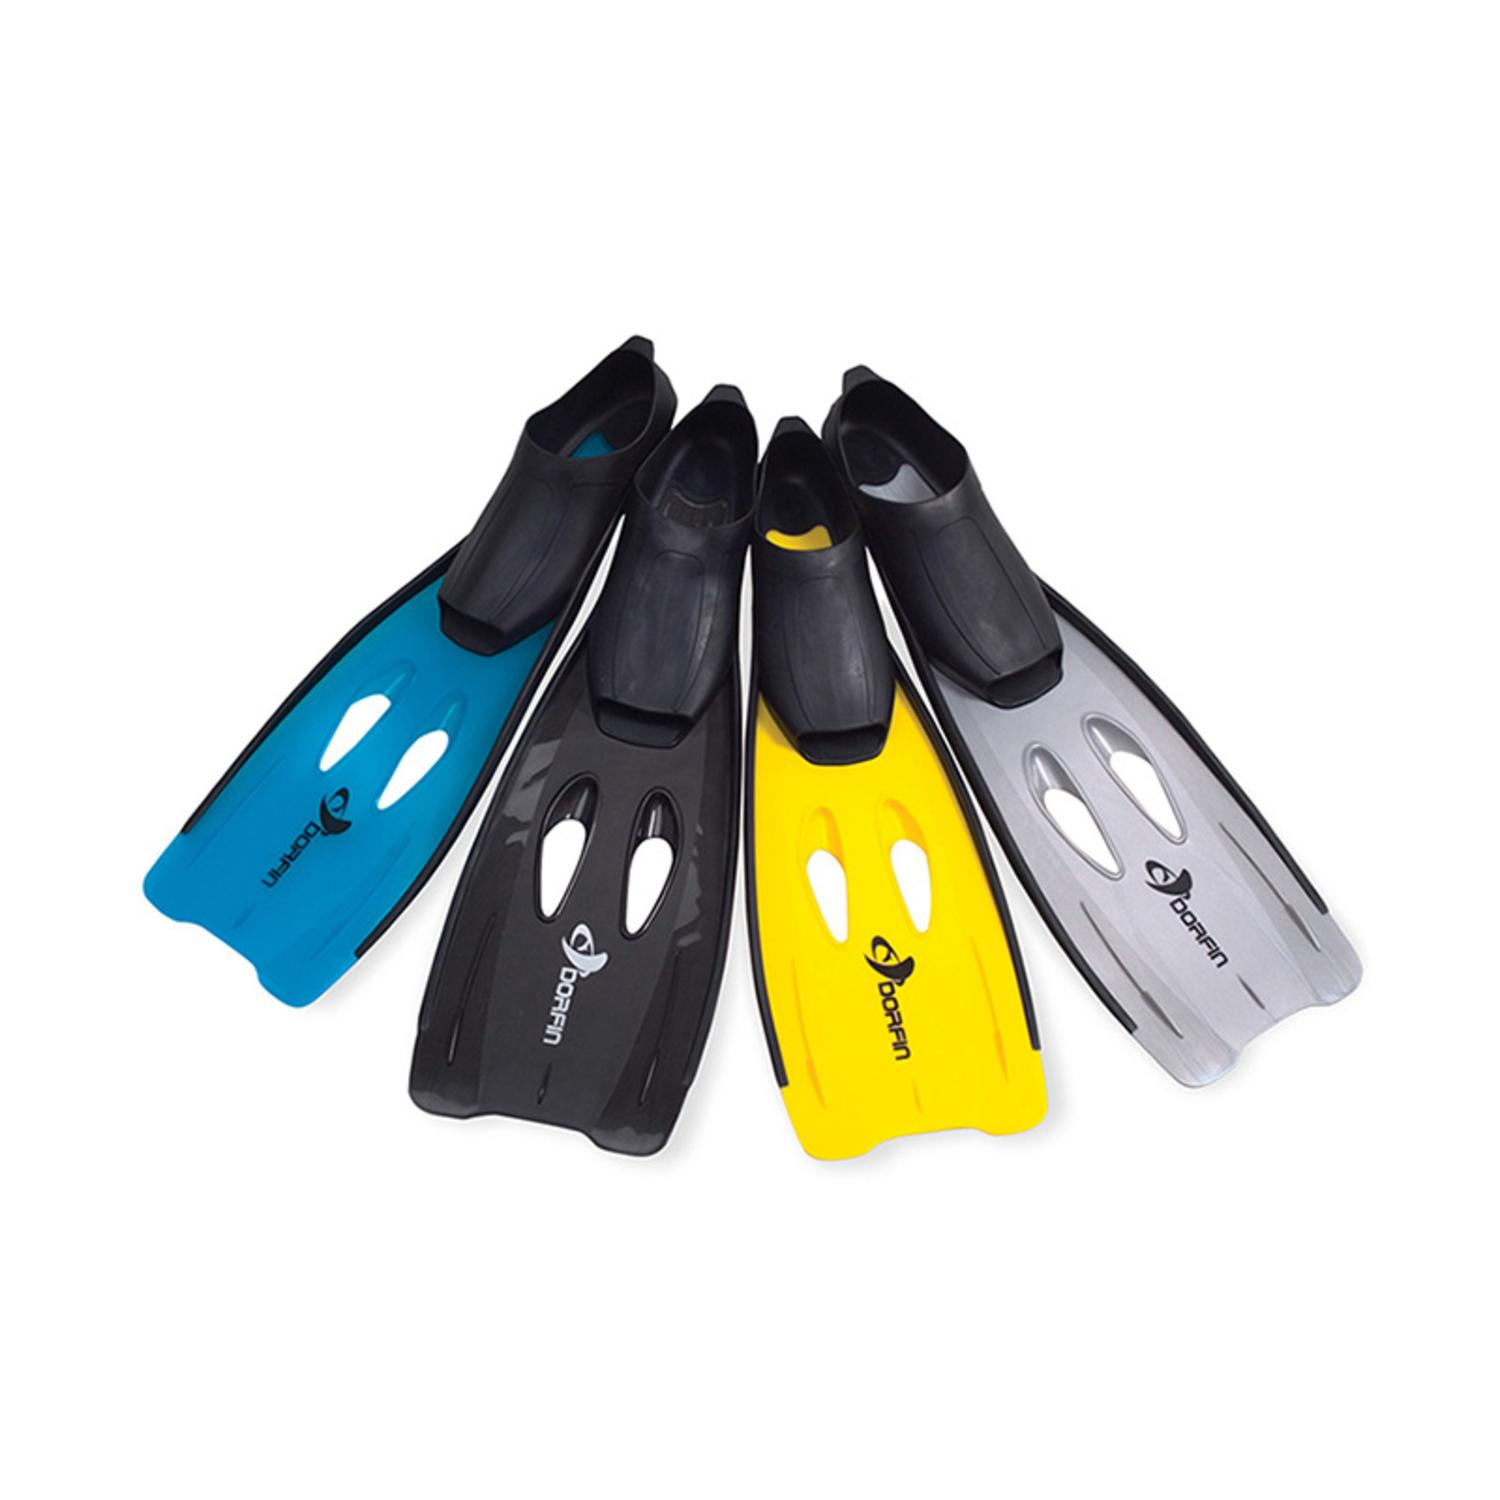 Yellow Dorfin Water or Swimming Pool Scuba or Snorkeling Fins with Nylon Mesh Bag - 2X Large